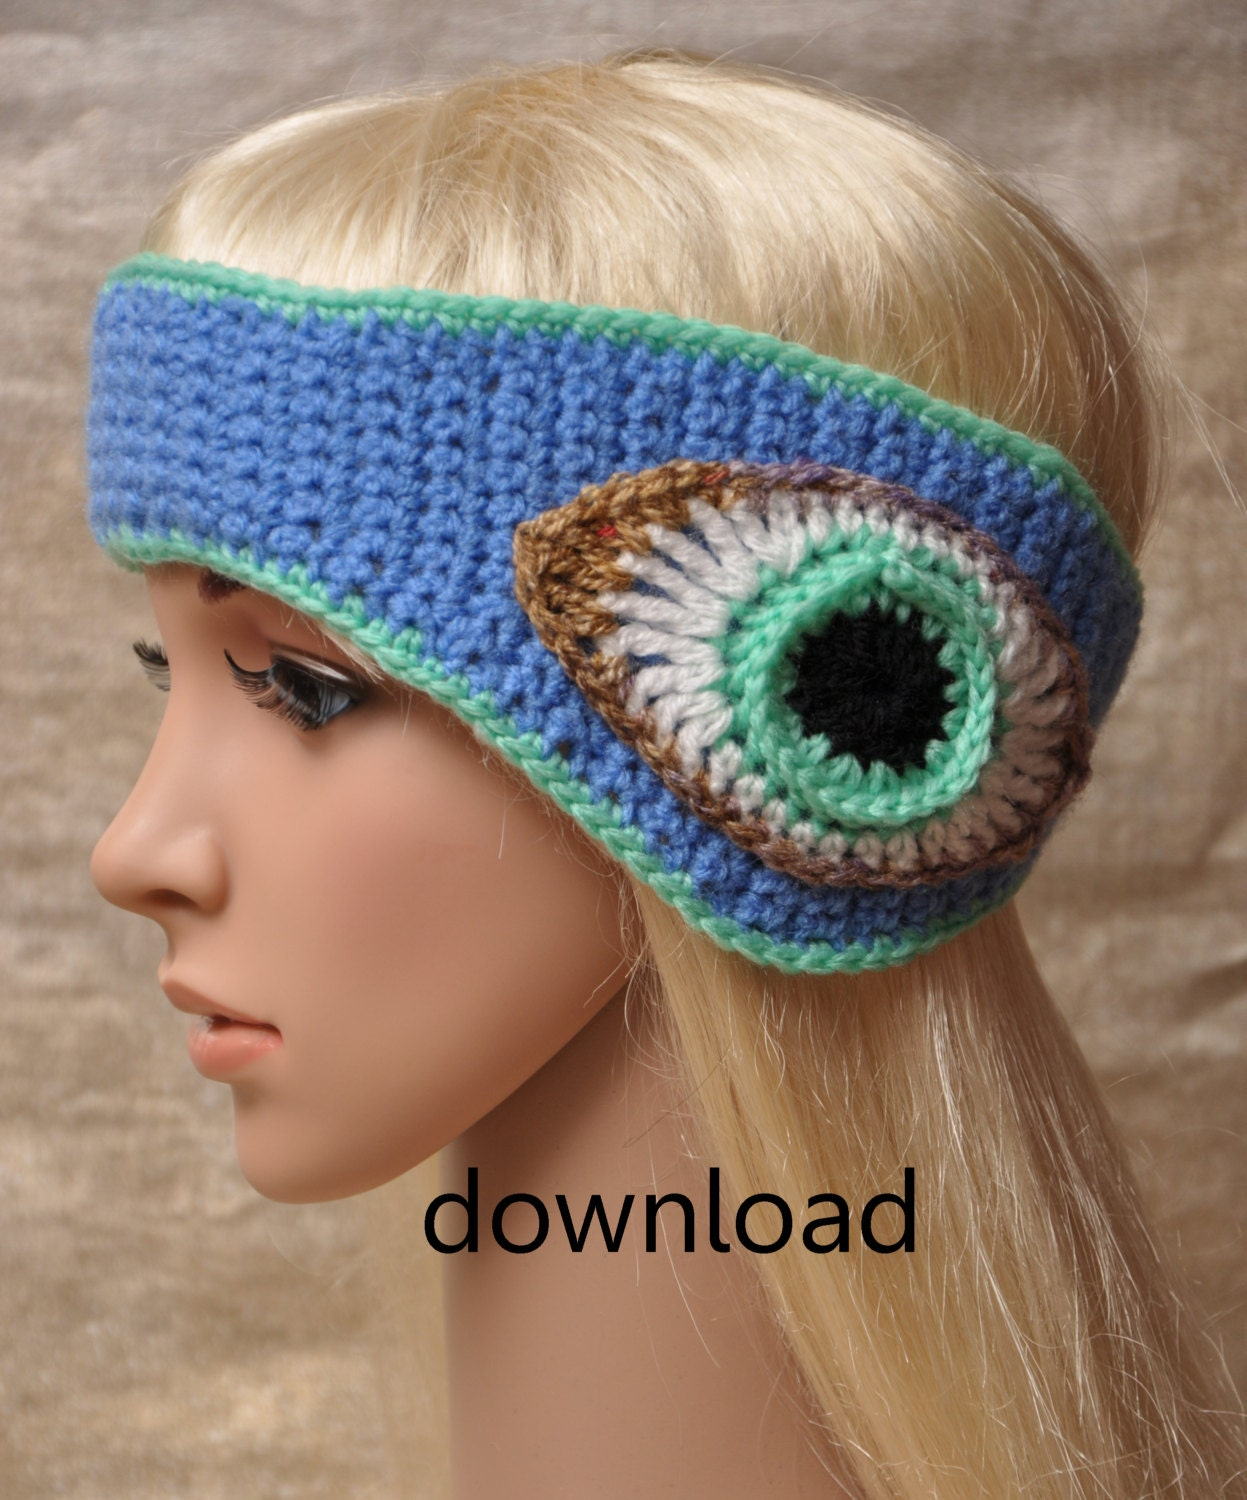 Crochet Patterns Headband Ear Warmer : Headband Ear Warmers Crochet Pattern . by CatherinesCornerShop